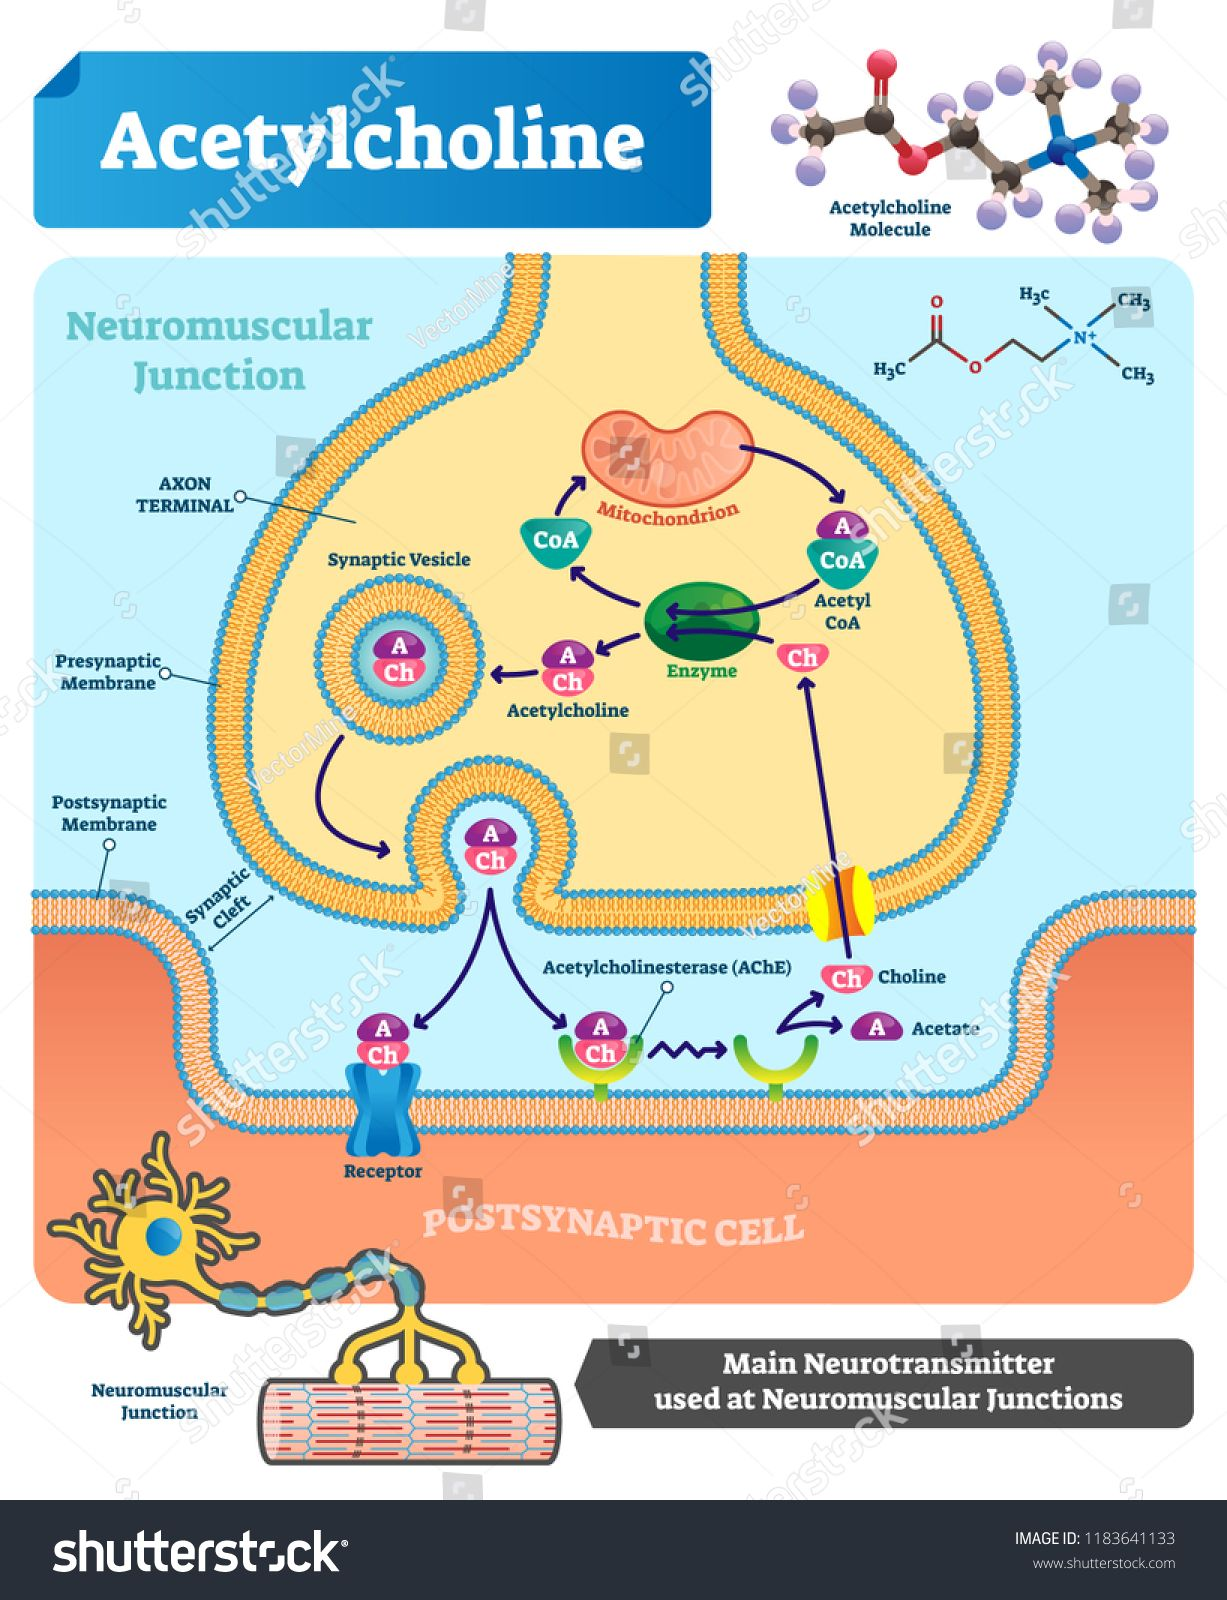 Acetylcholine Vector Illustration Labeled Scheme With Structure Of Neurotransmitter Neuromuscular Junction Acetylcholine Neuromuscular Junction Biochemistry